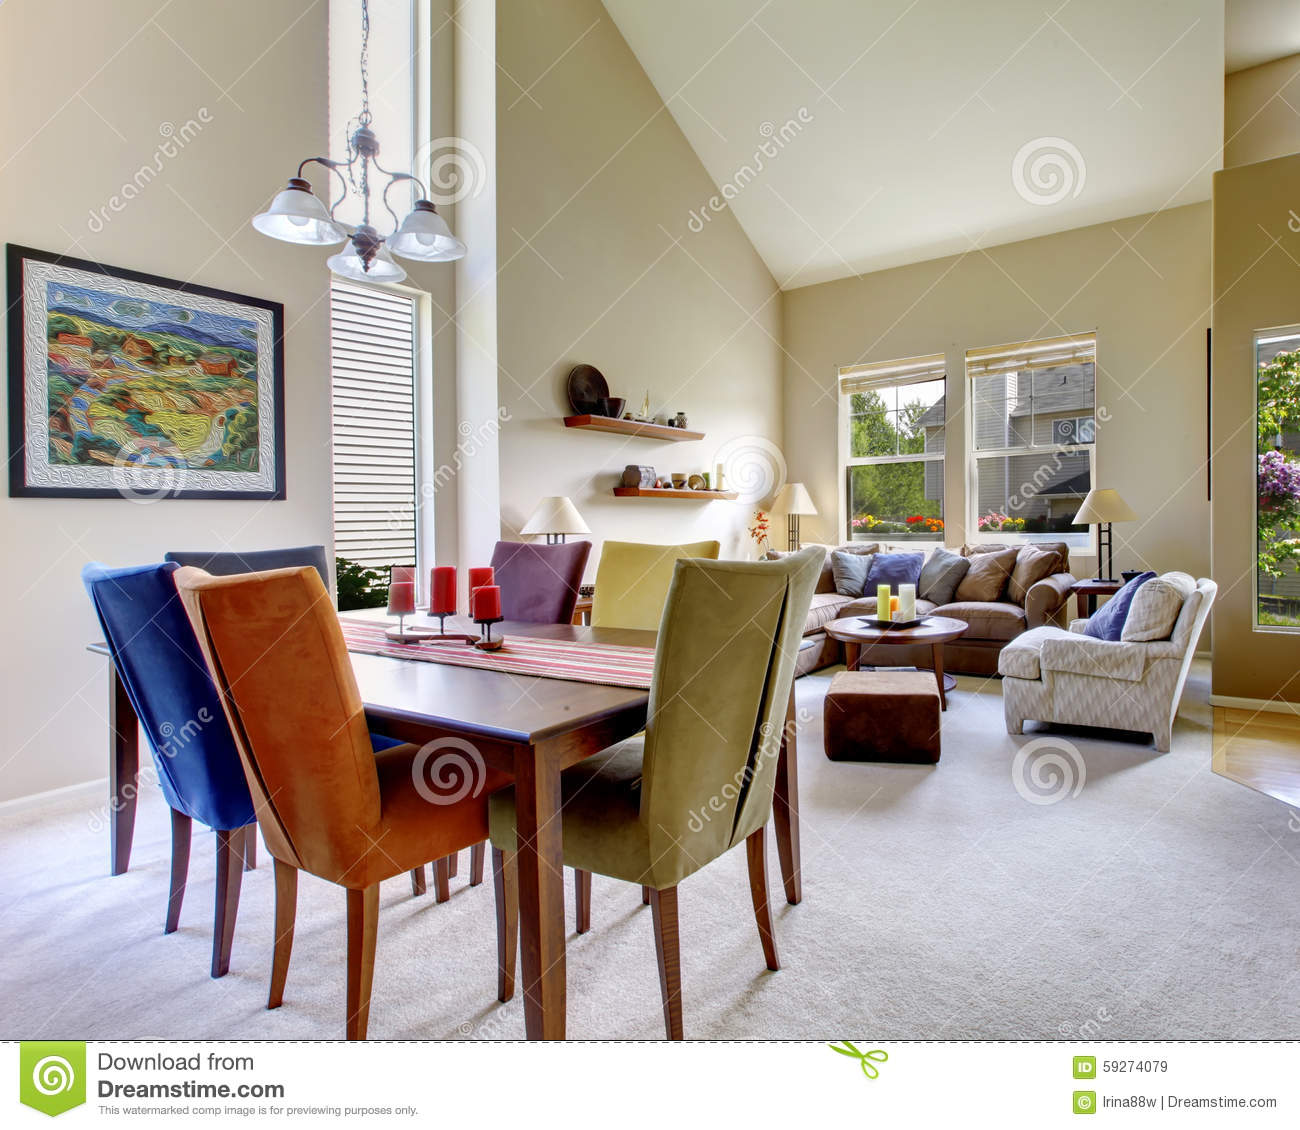 Images libres de droits large beige bright living room for Chaise de salle a manger de couleur